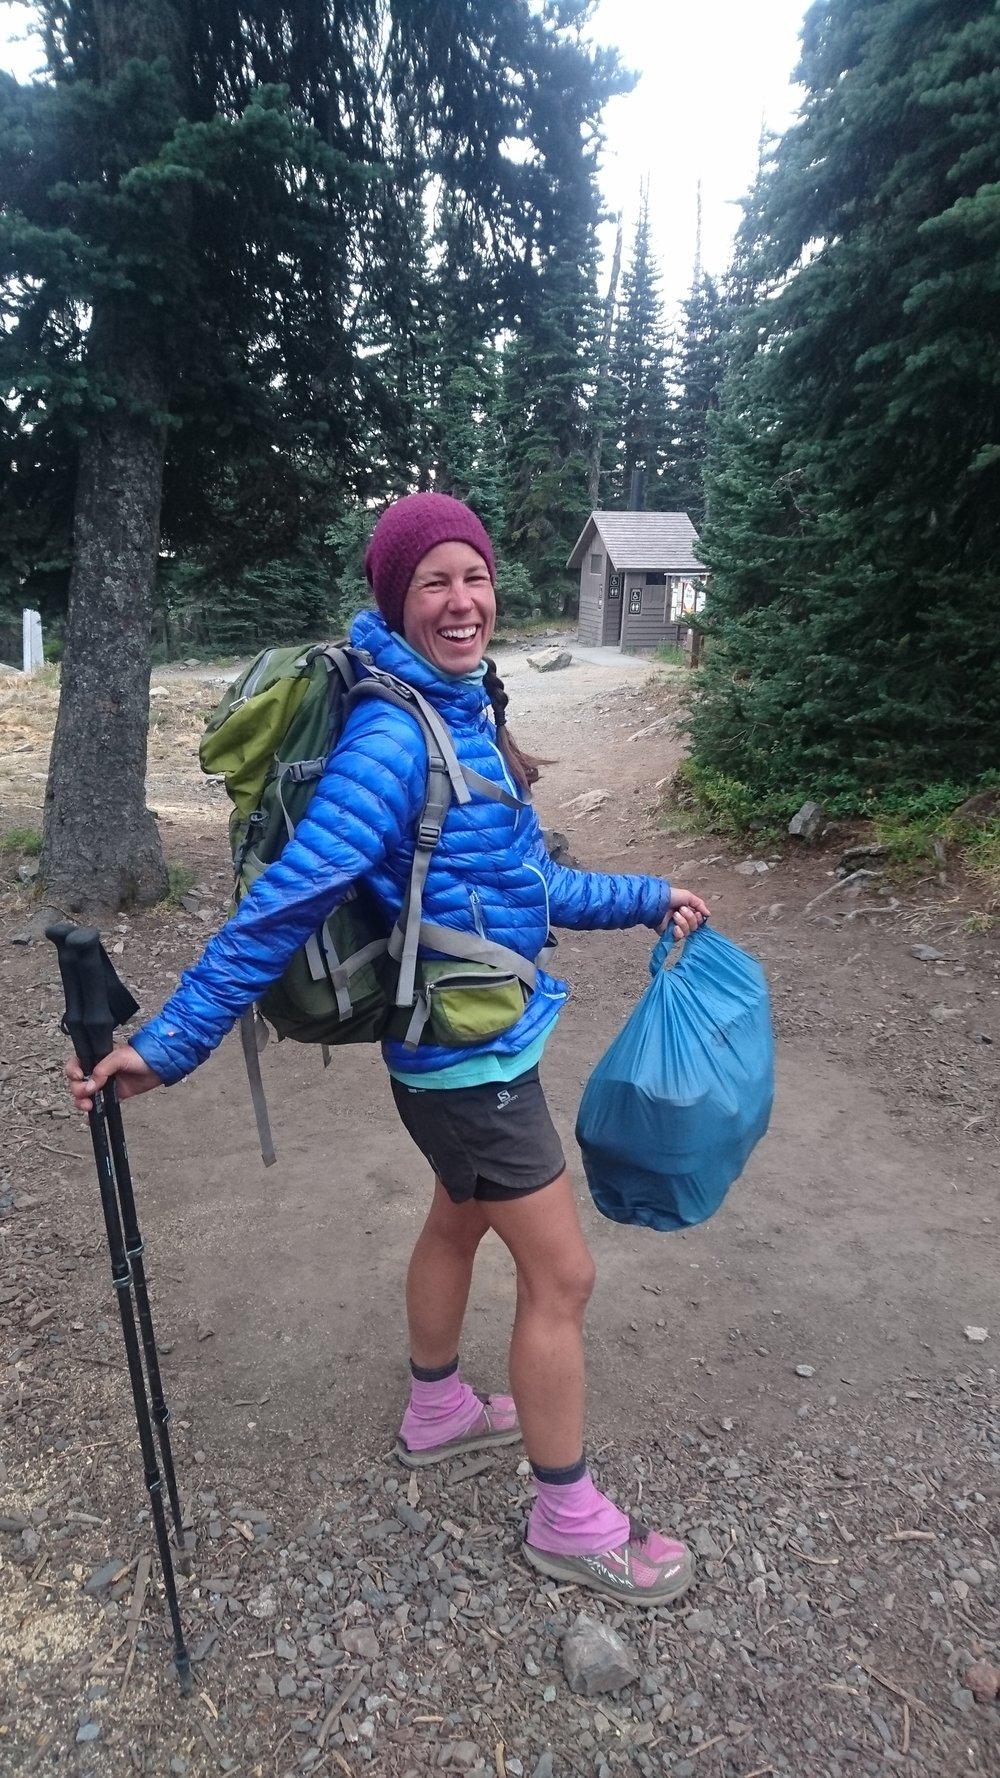 My pack slimmed down to almost nothing. Thata girl!